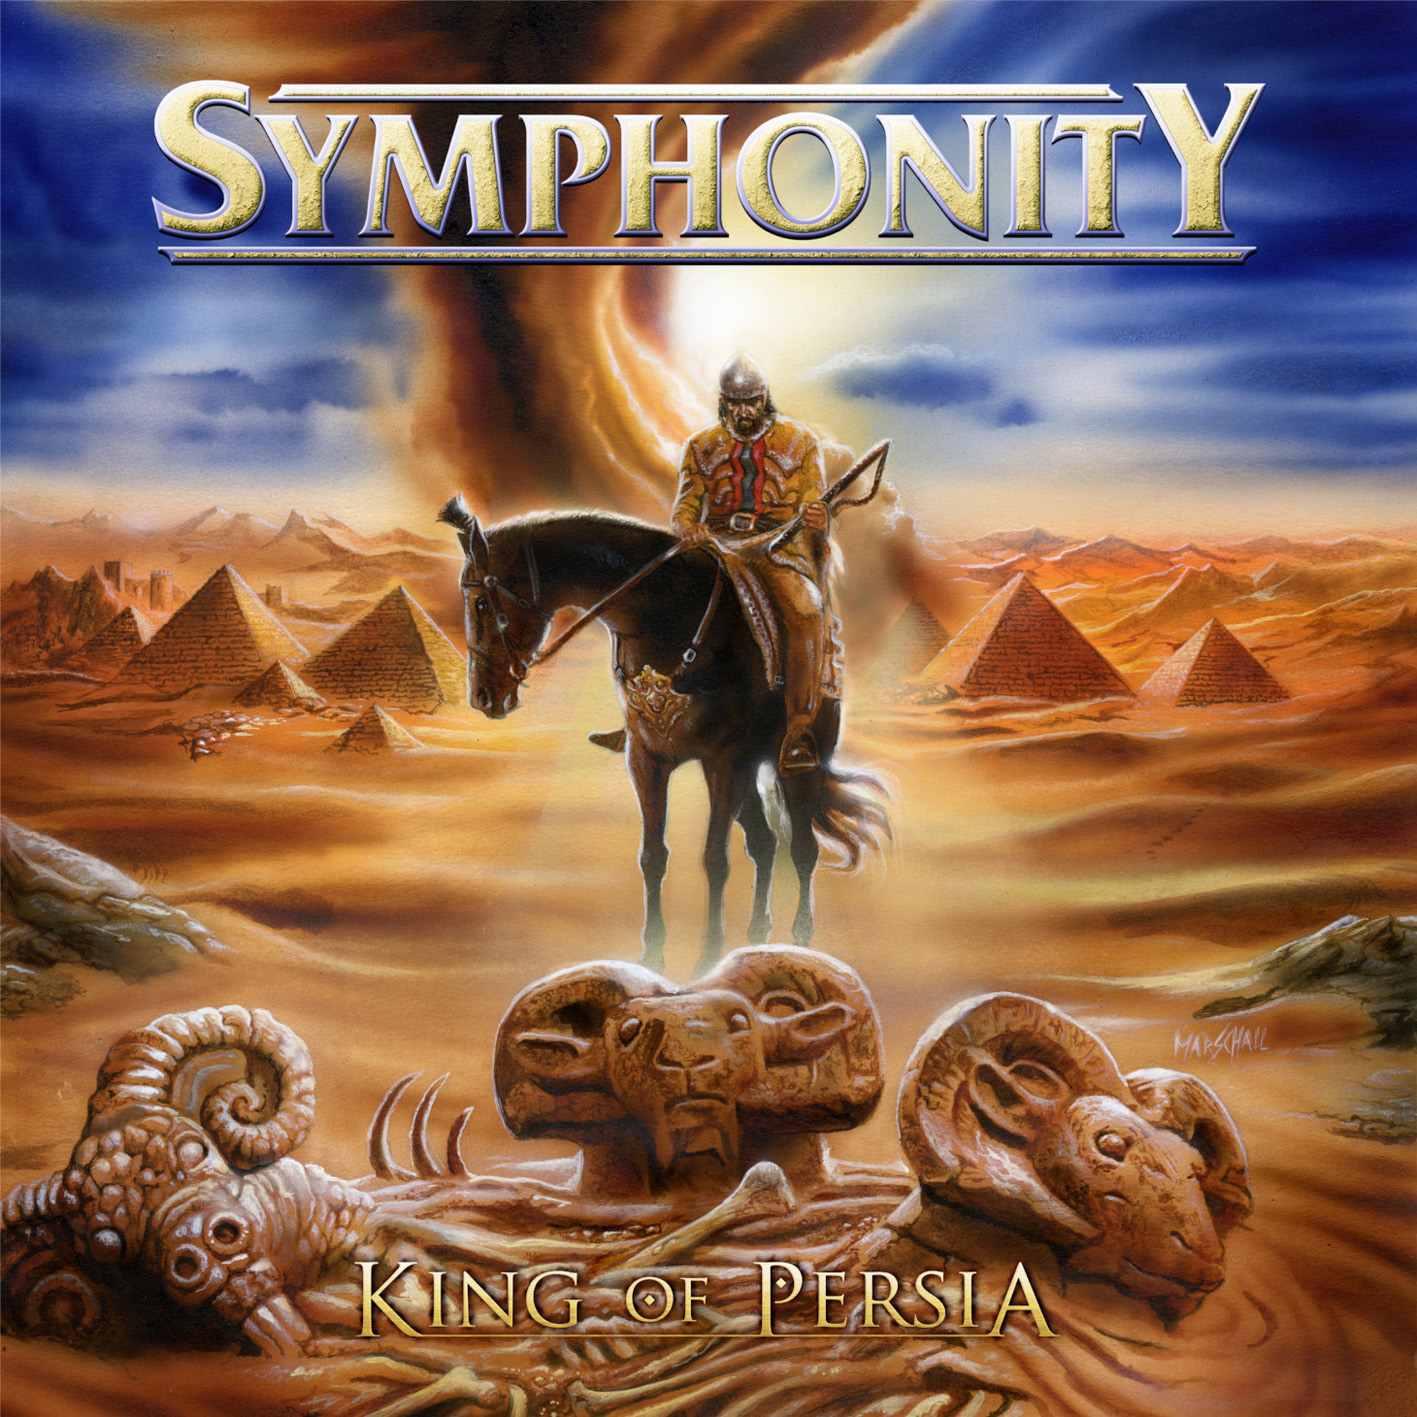 Symphonity – King of Persia